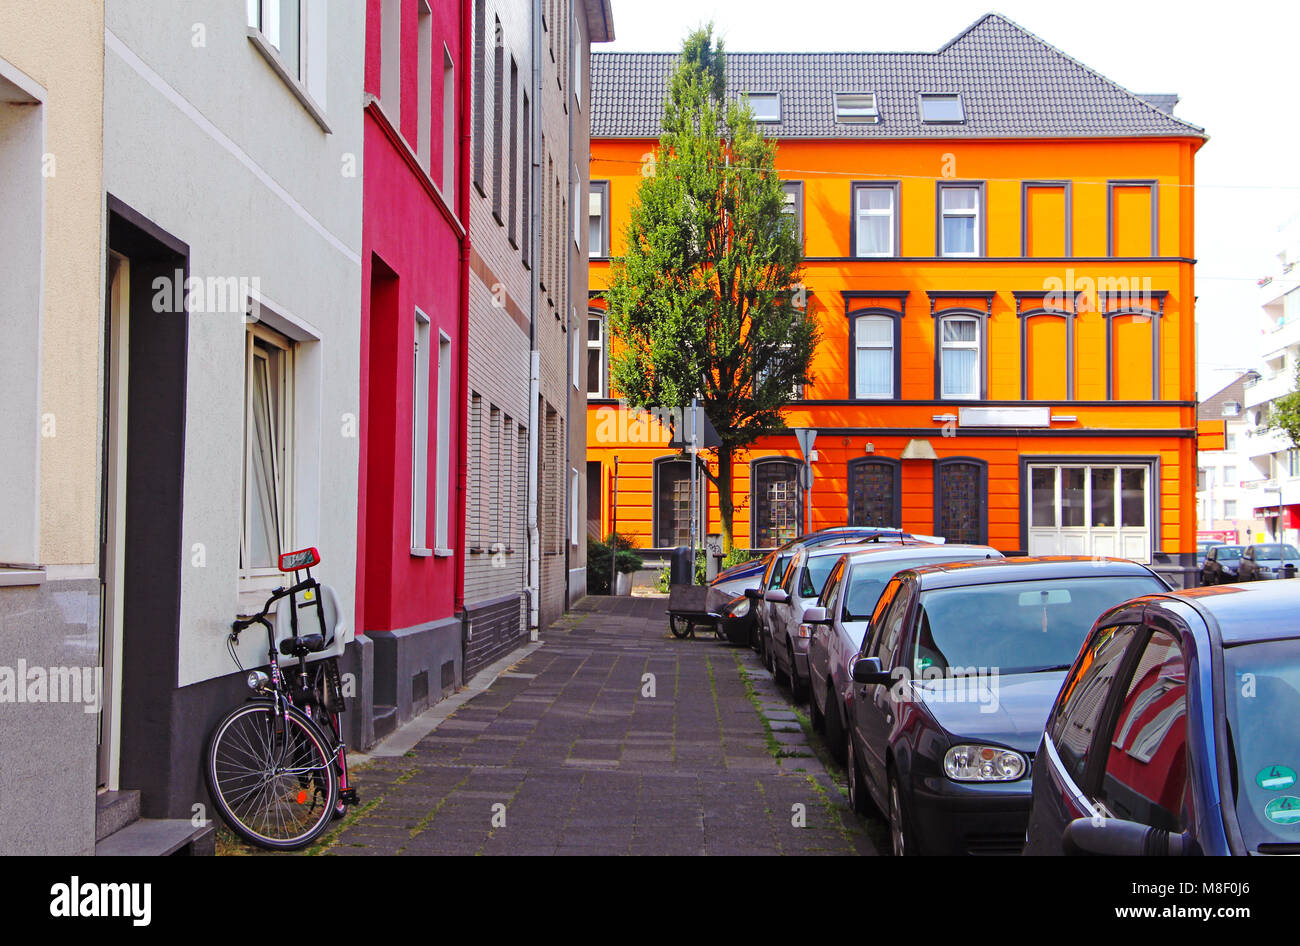 Street with colorful houses in the city near the centre of Krefeld, Germany - Stock Image